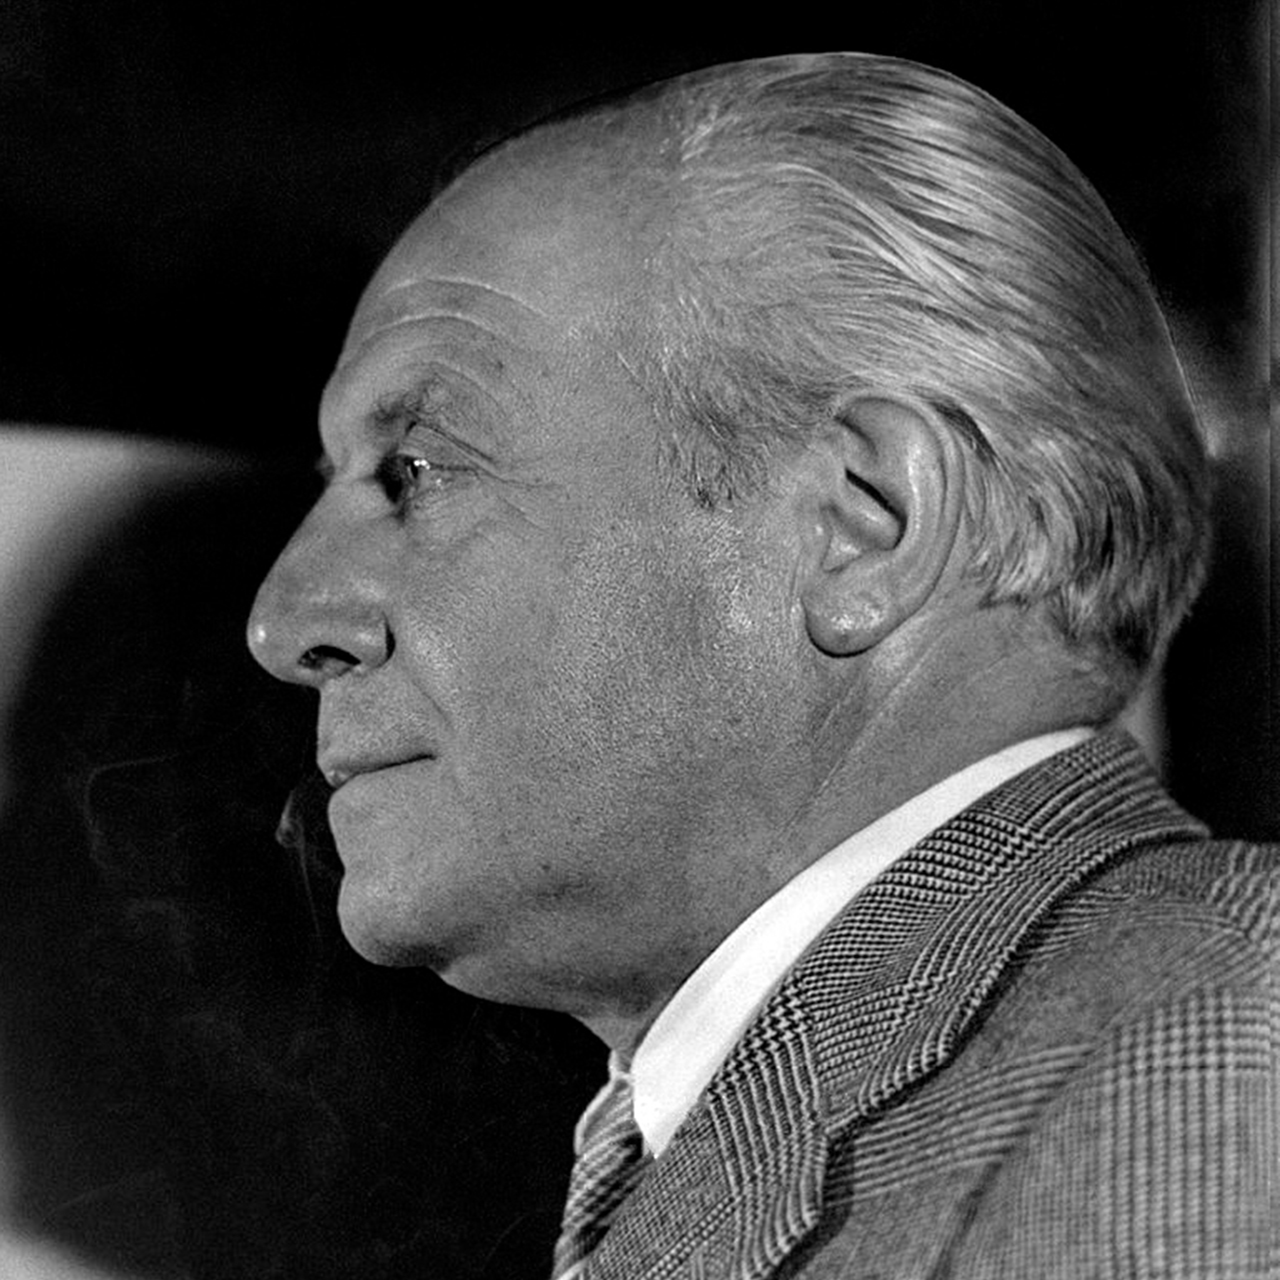 Portrait of Italian architect and designer Gio Ponti with gray checkered suit